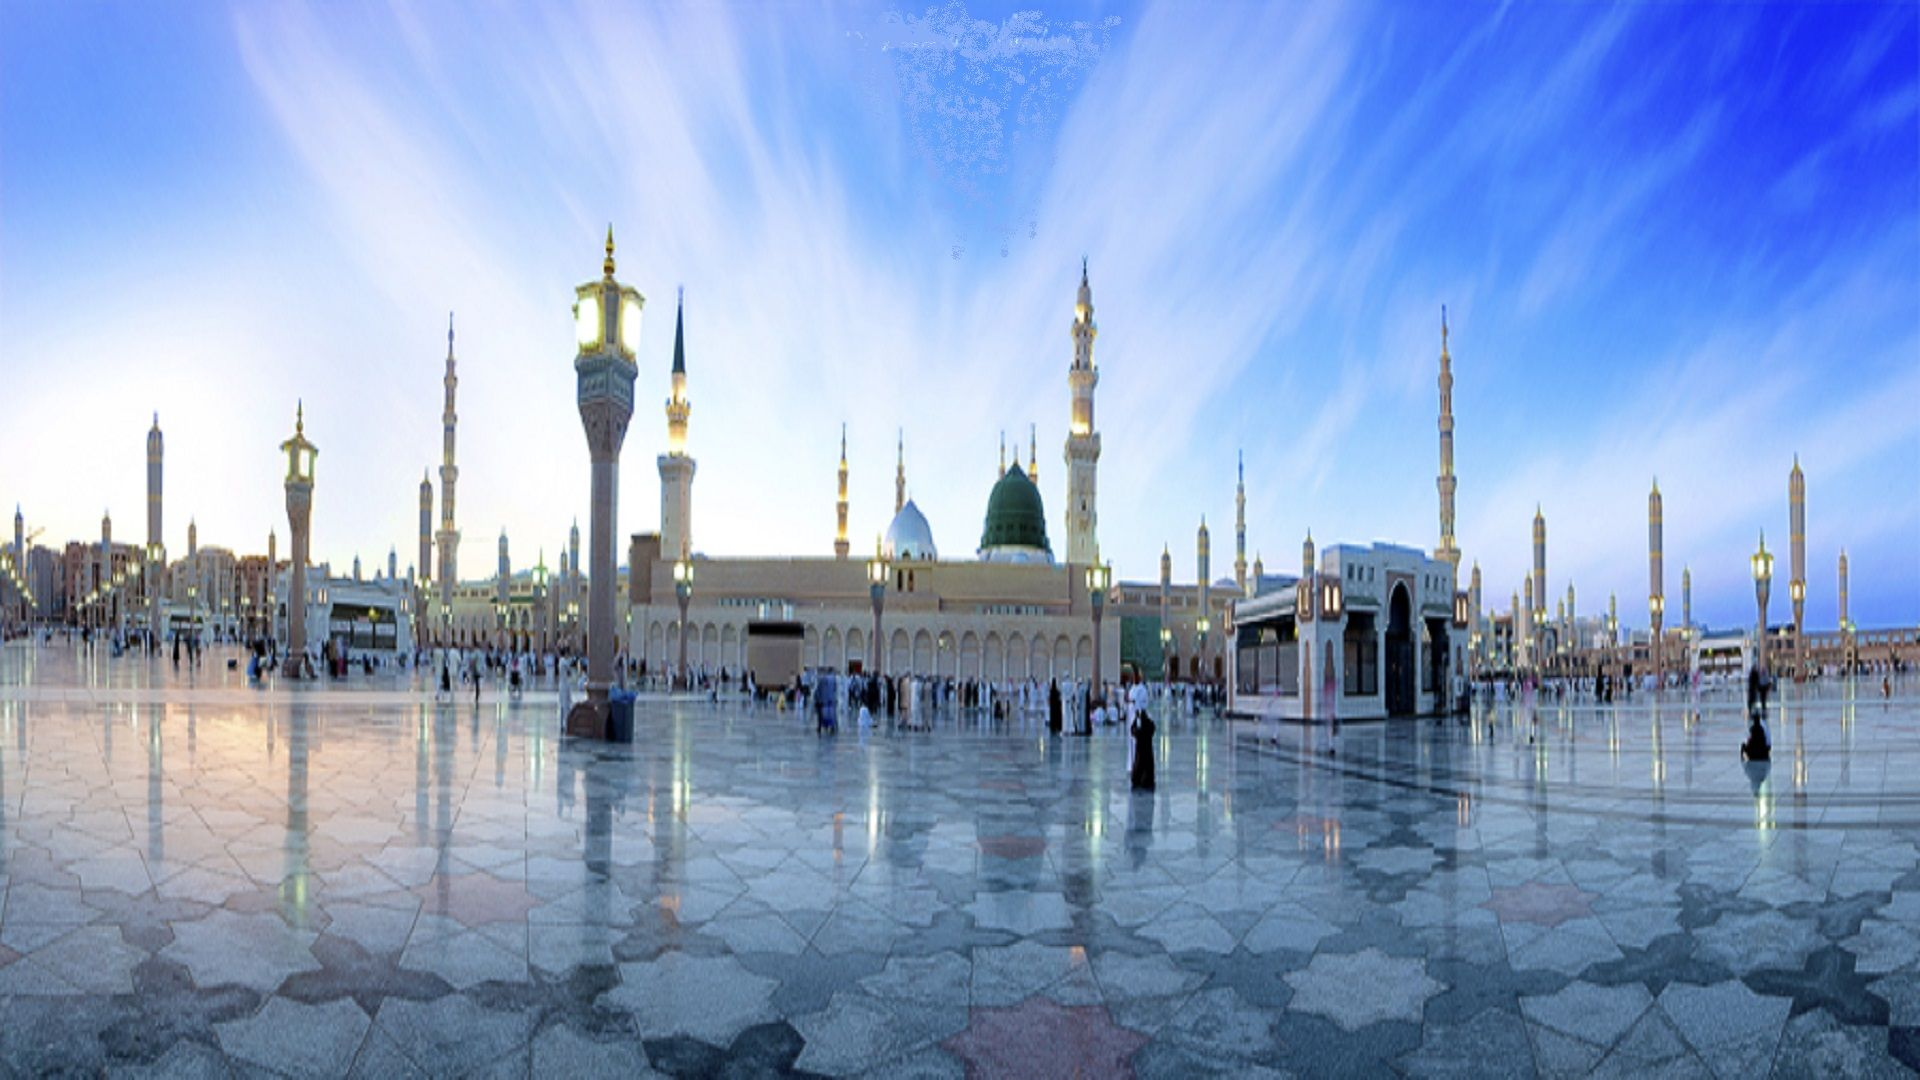 Pin By Nesrinemisha On Makkah And El Madina Mecca Pinterest